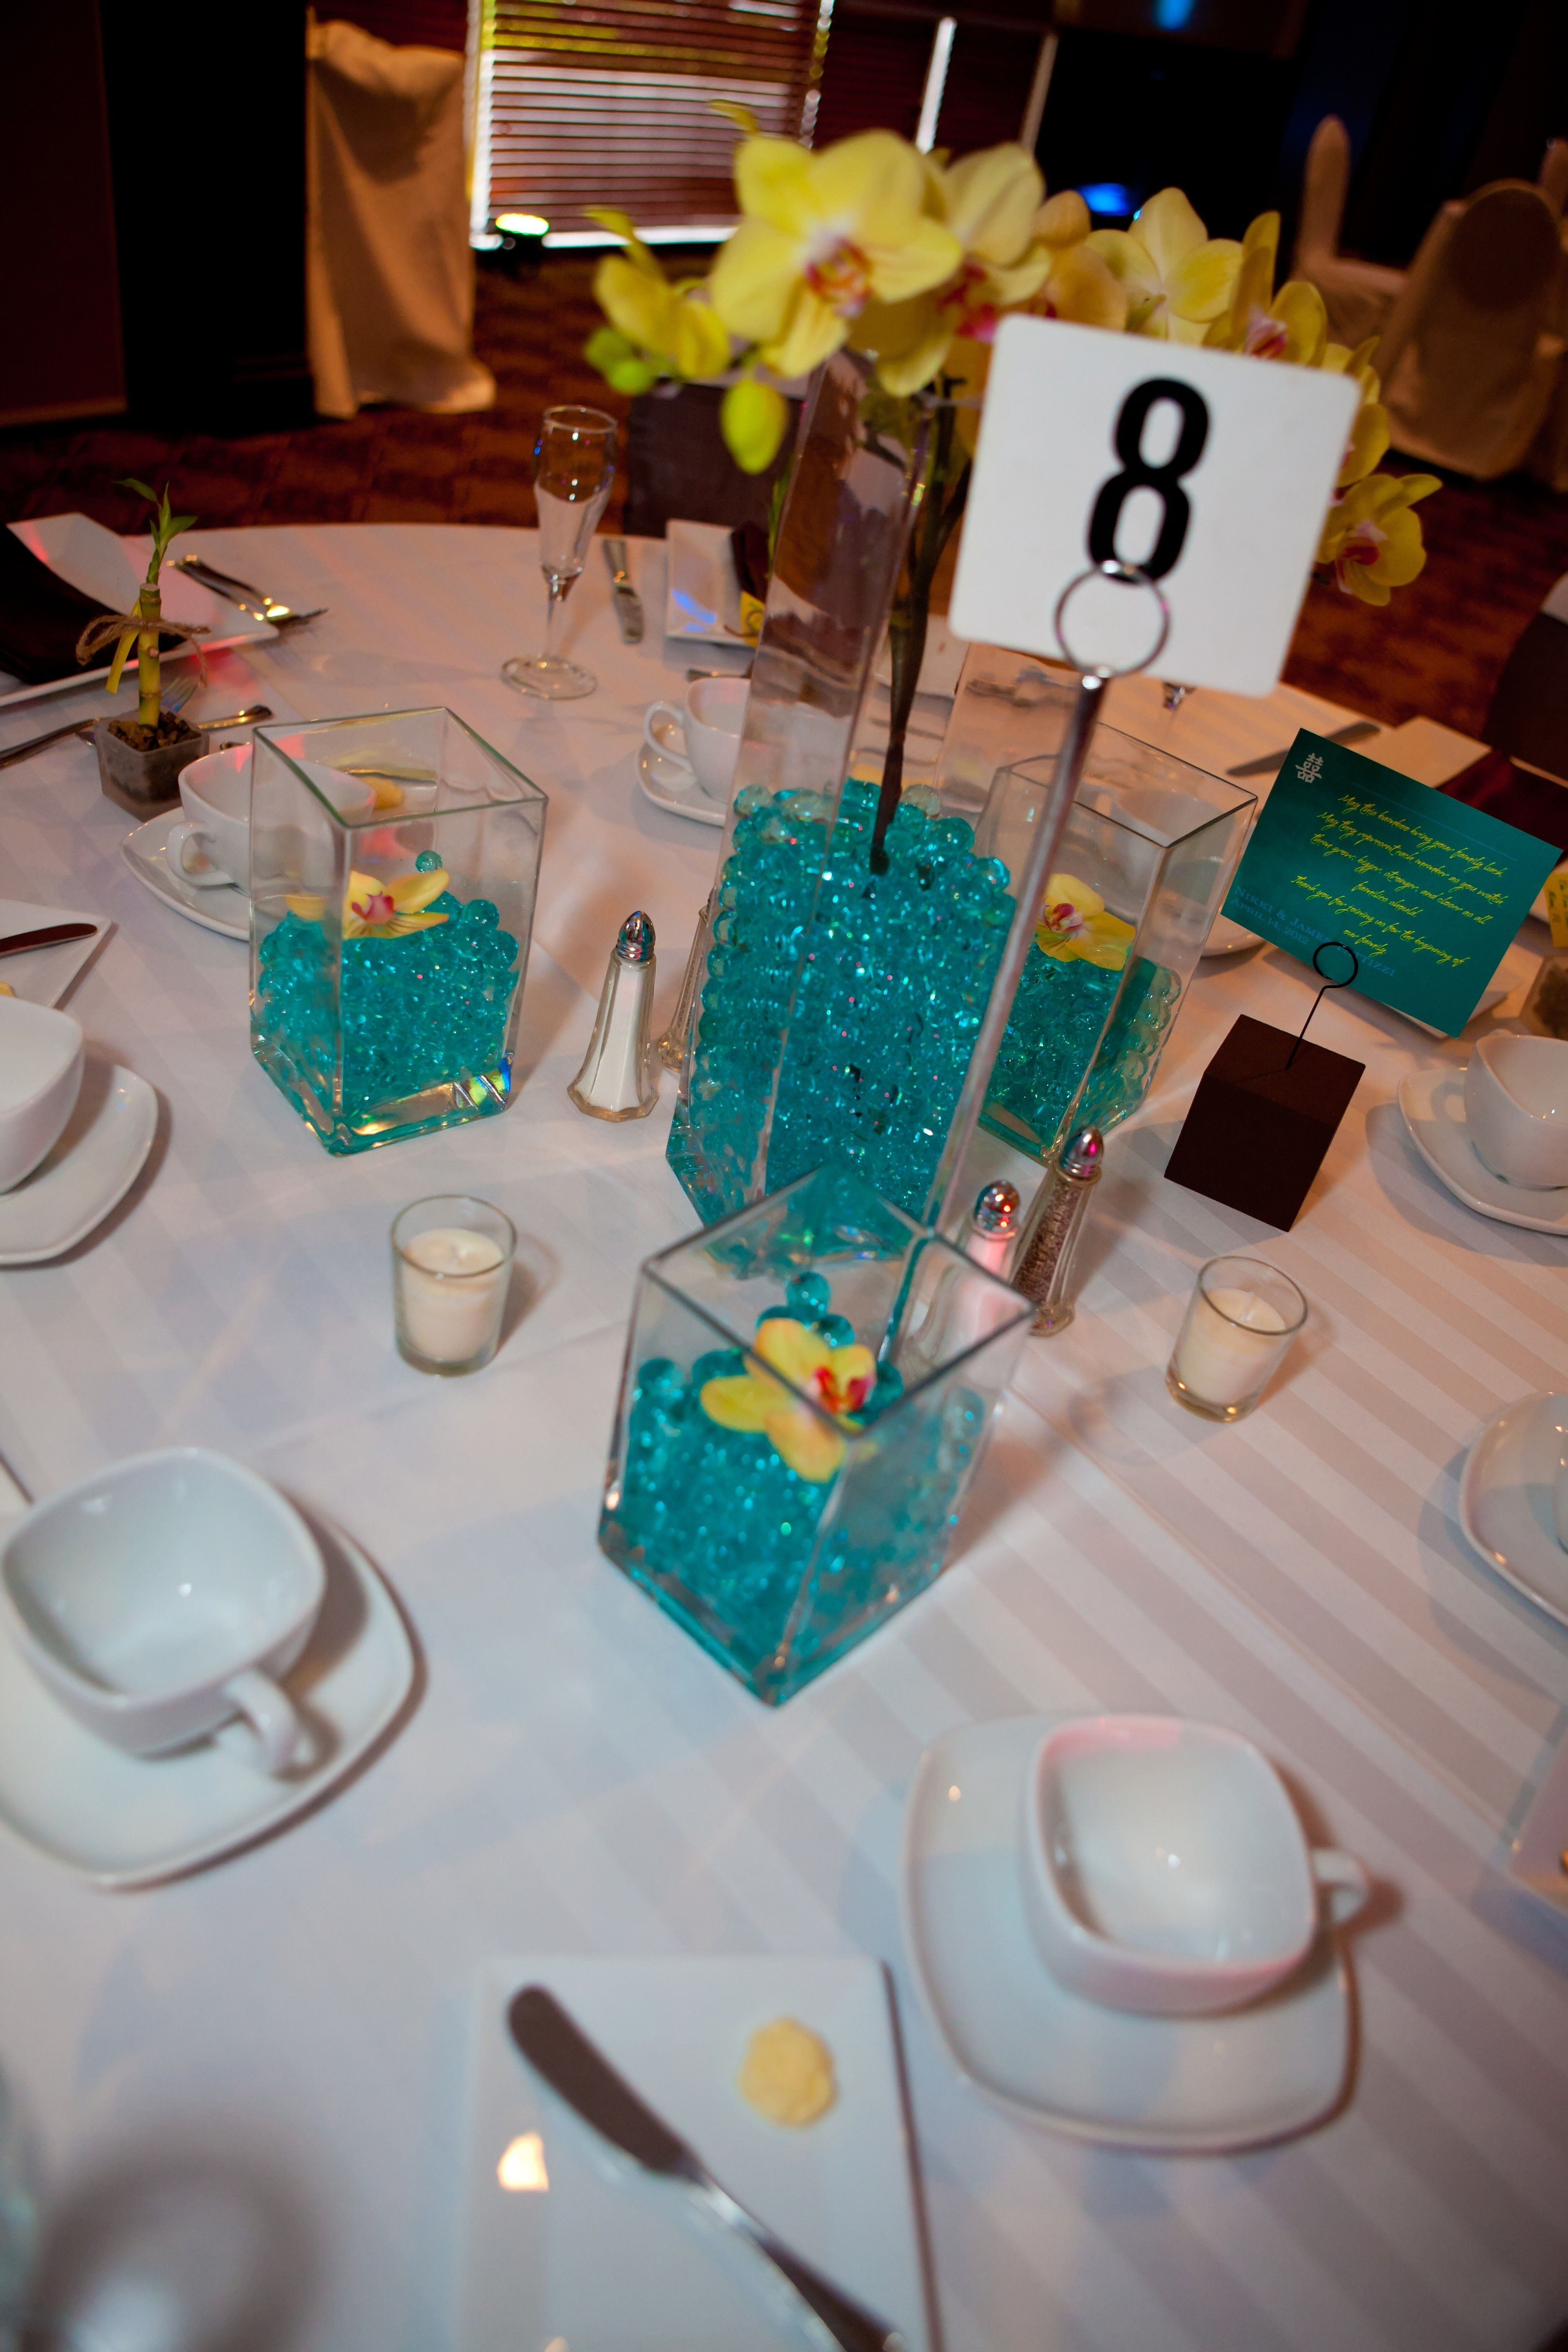 skinny vase centerpiece of wedding centerpieces square vases teal water beads yellow inside centerpieces square vases teal water beads yellow orchids candles